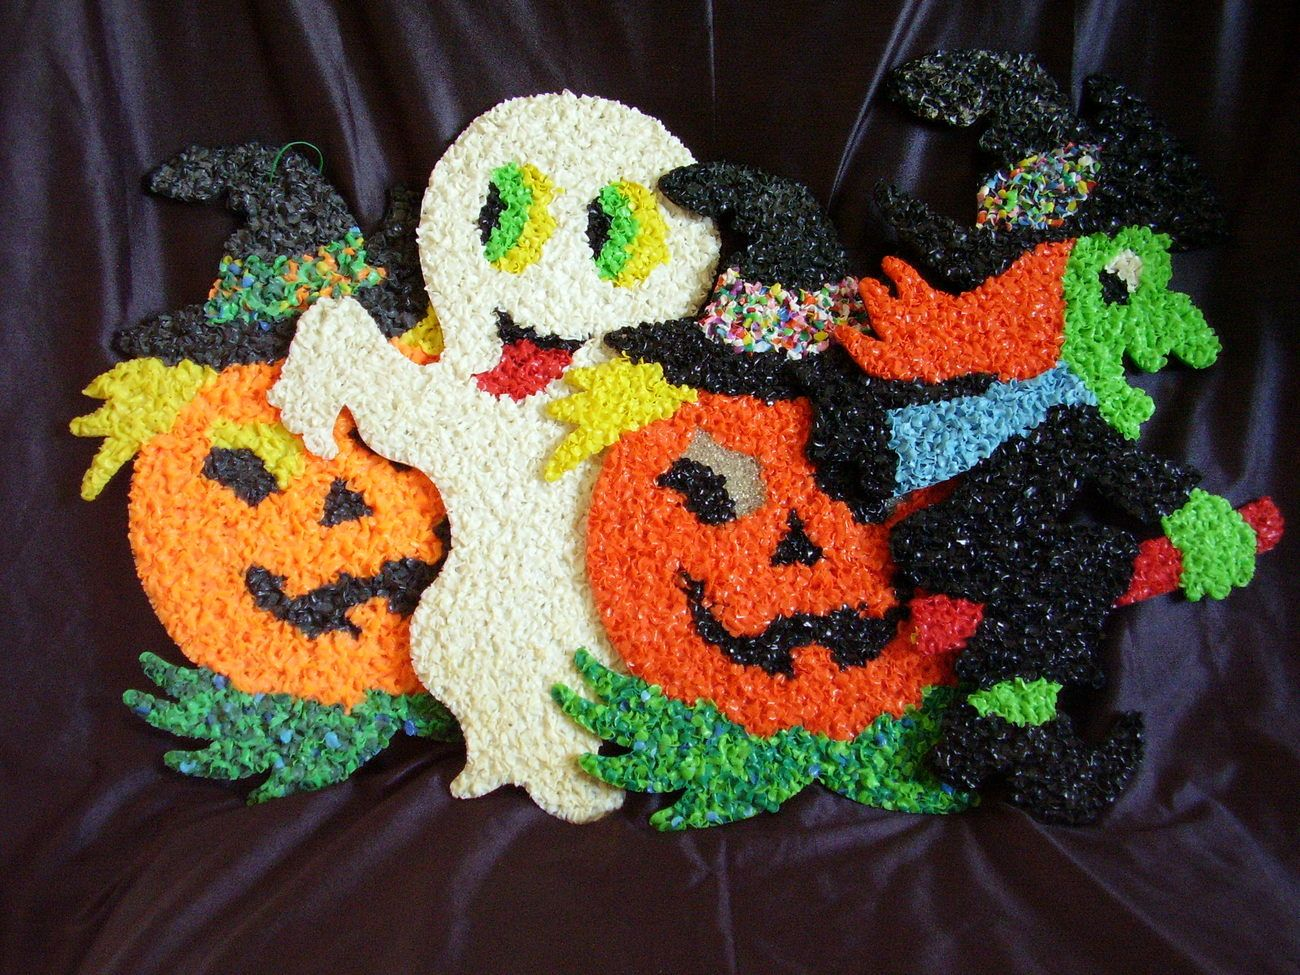 Bonanza Find Everything But The Ordinary Popcorn Decorations Halloween Crafts Vintage Holiday